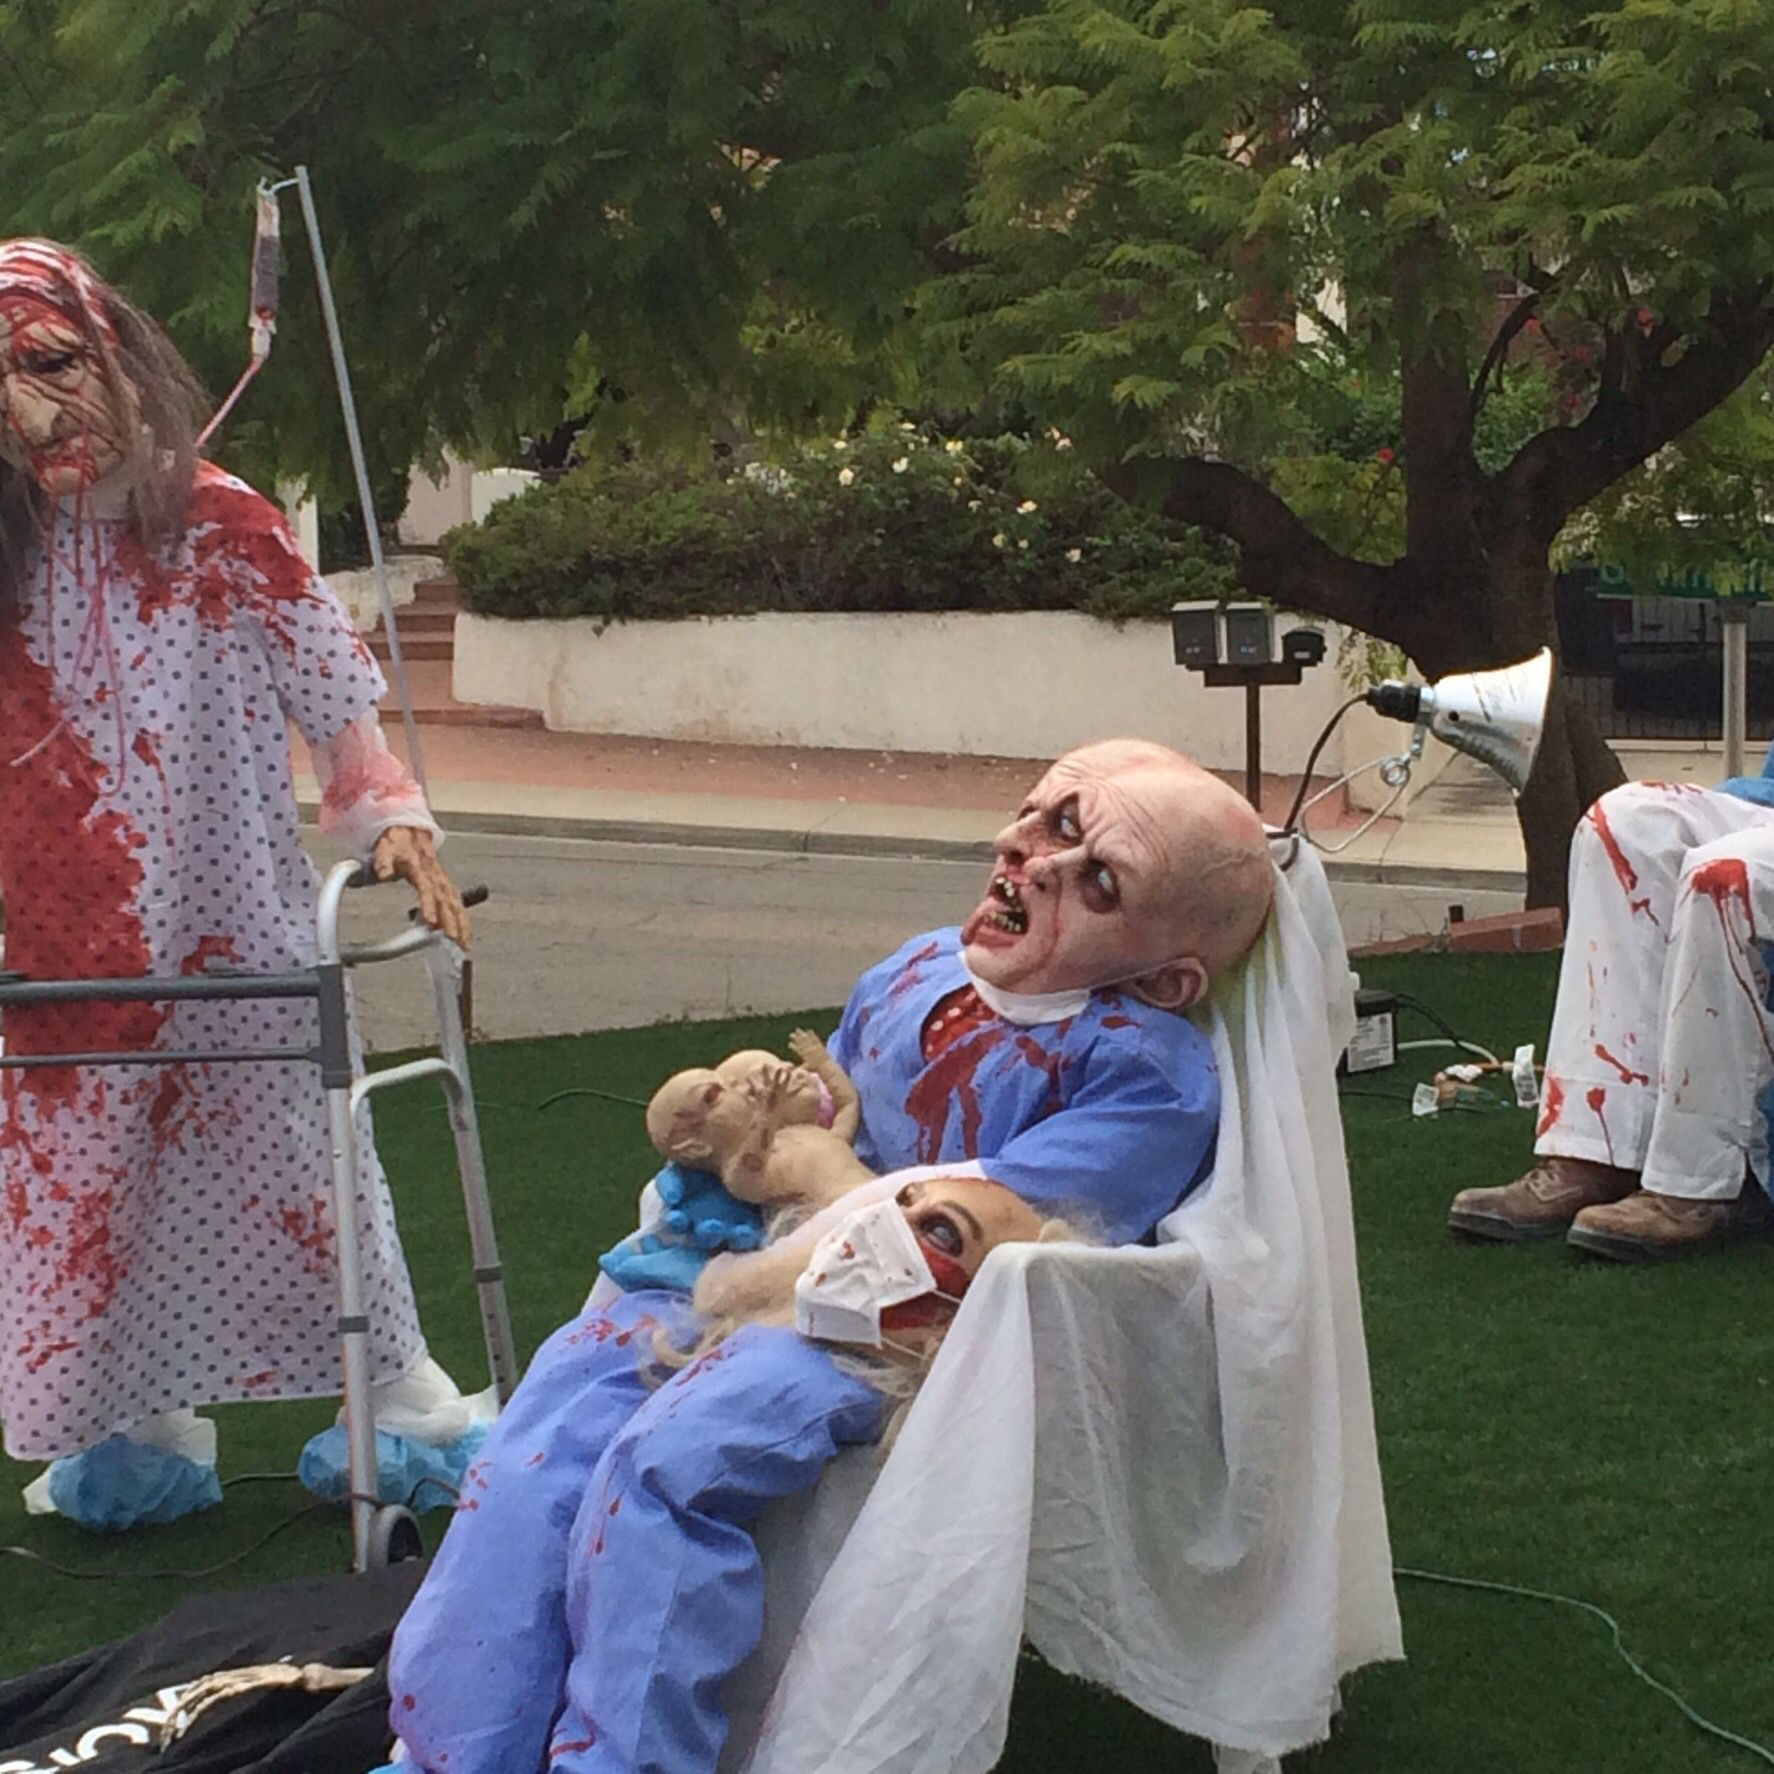 Two Headed Baby And Scary Freak Mask Used For Hospital